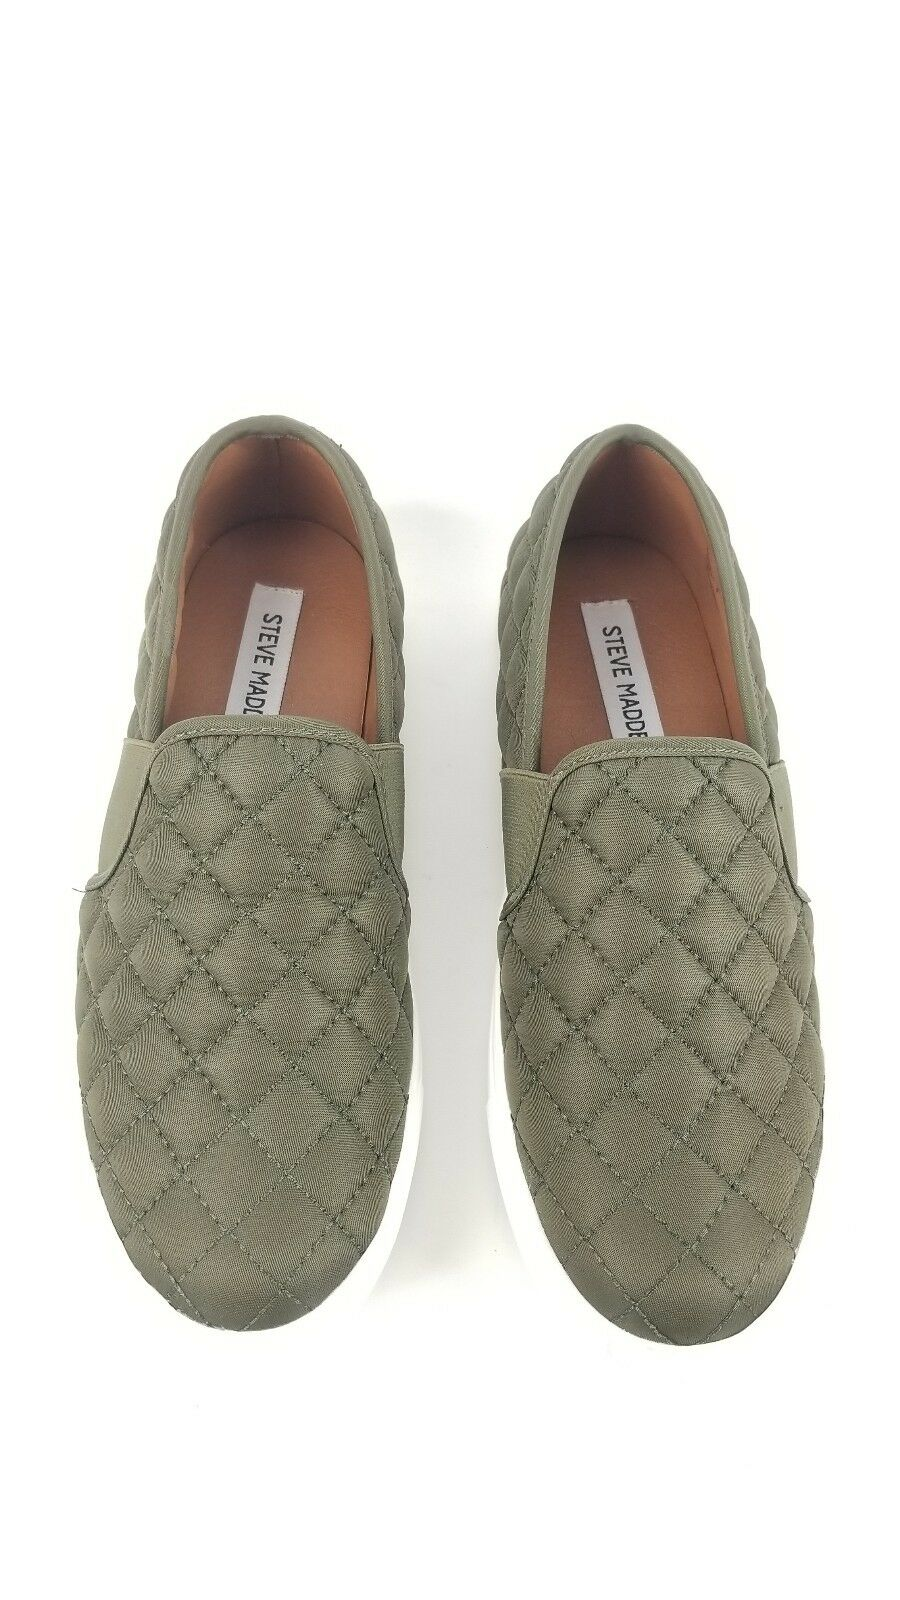 New Steve Madden Madden Madden damen Größe 8 Flats Leather Endell Olive Slip On 52d3f6